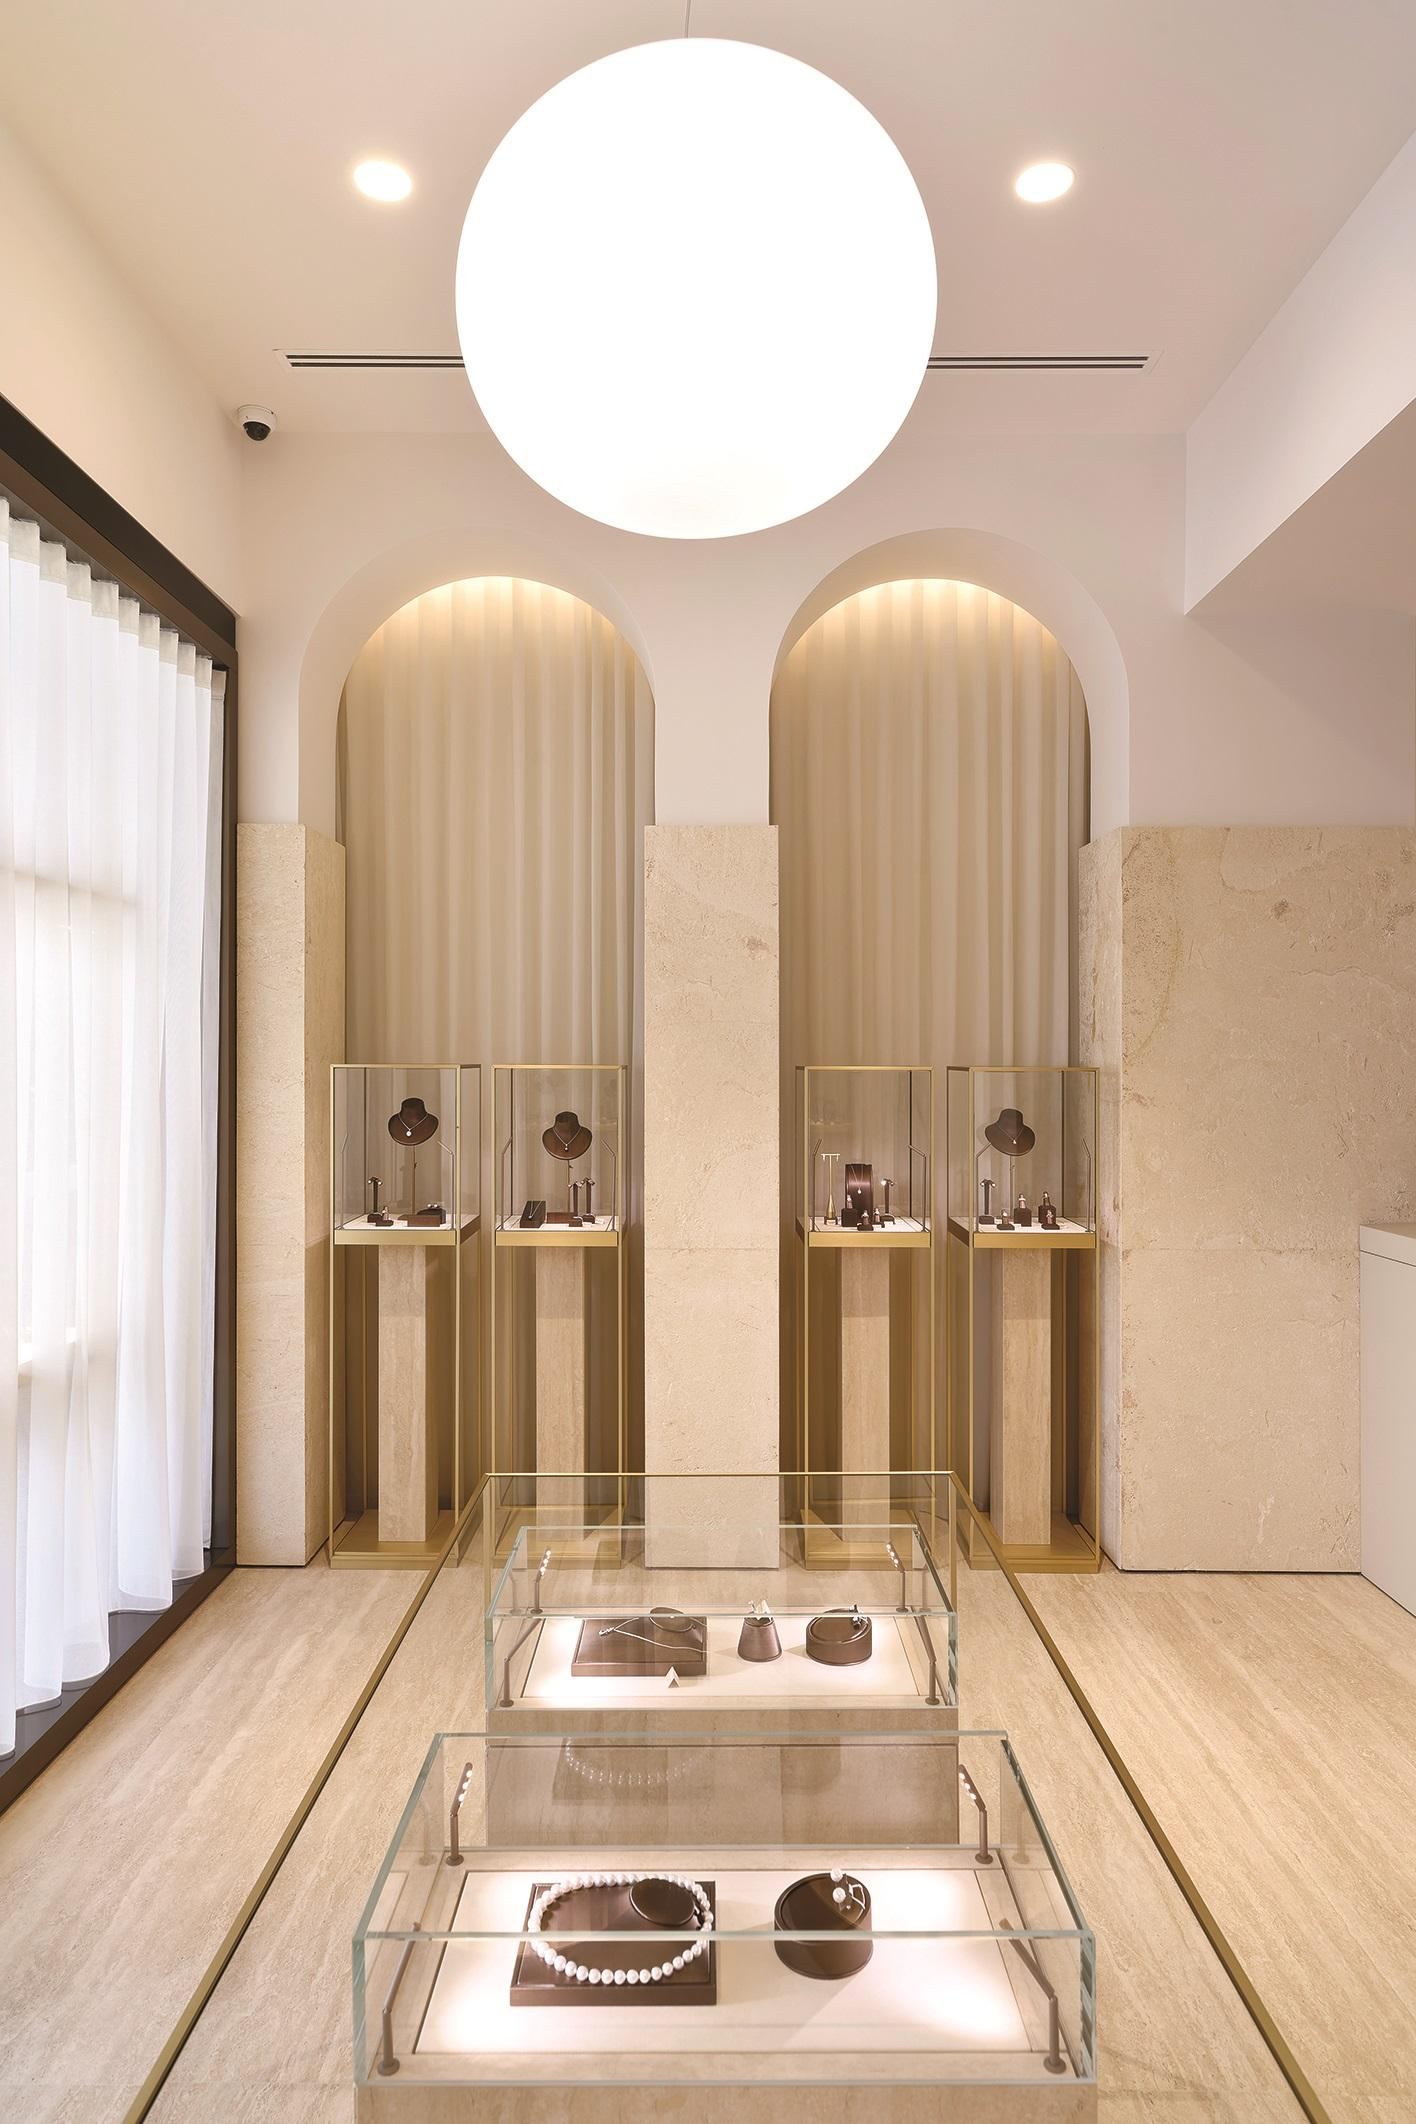 Art Diamond, Sliema: a jewellery store designed to resemble art spaces with archways, diffused light and plinthed vitrines replacing crowded product display. Photo: Alex Attard